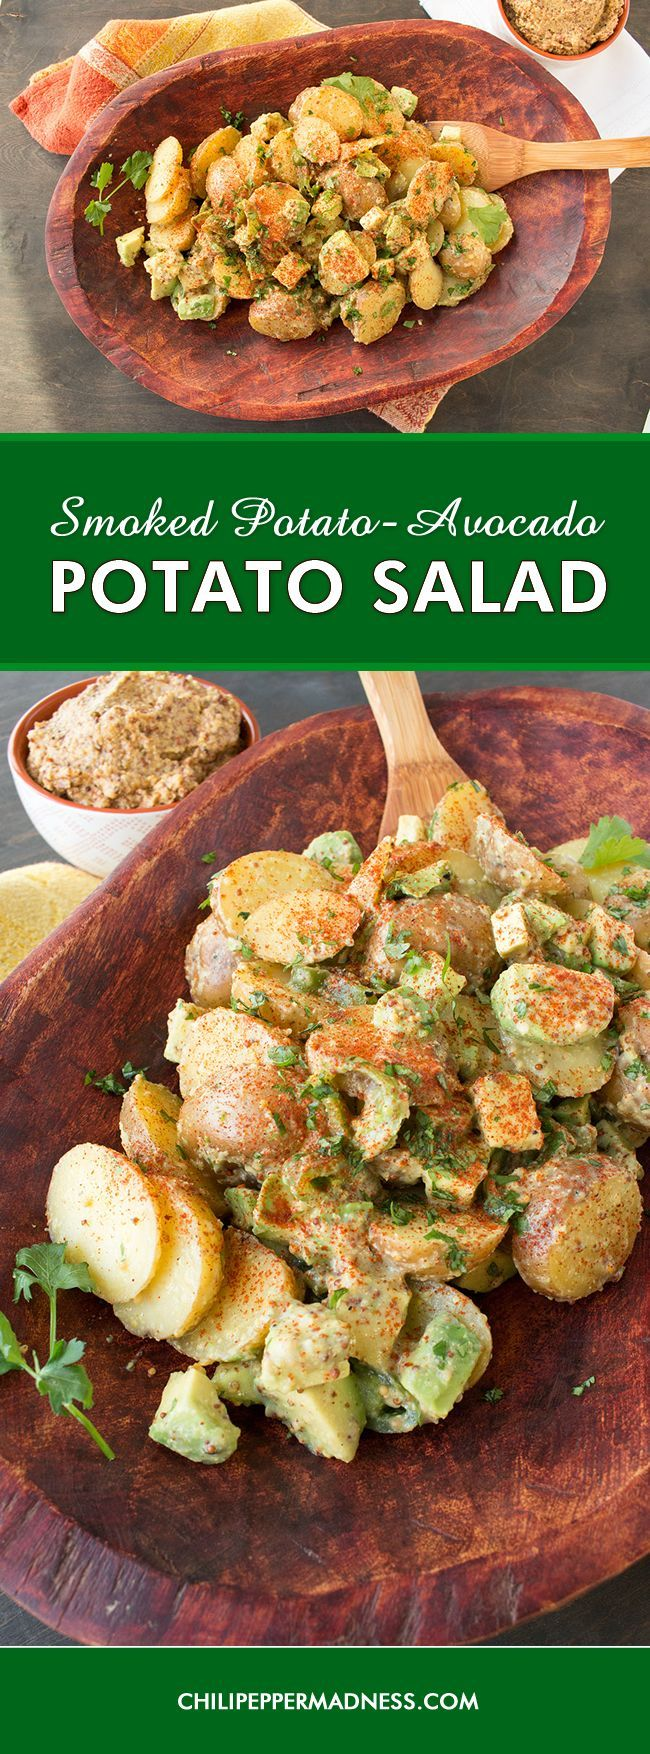 Smoked Potato-Avocado Potato Salad Recipe - A summertime potato salad recipe made with lightly smoked potatoes, ripe avocados and roasted jalapeno peppers. It is creamy and tangy and sure to be a hit at your next party.